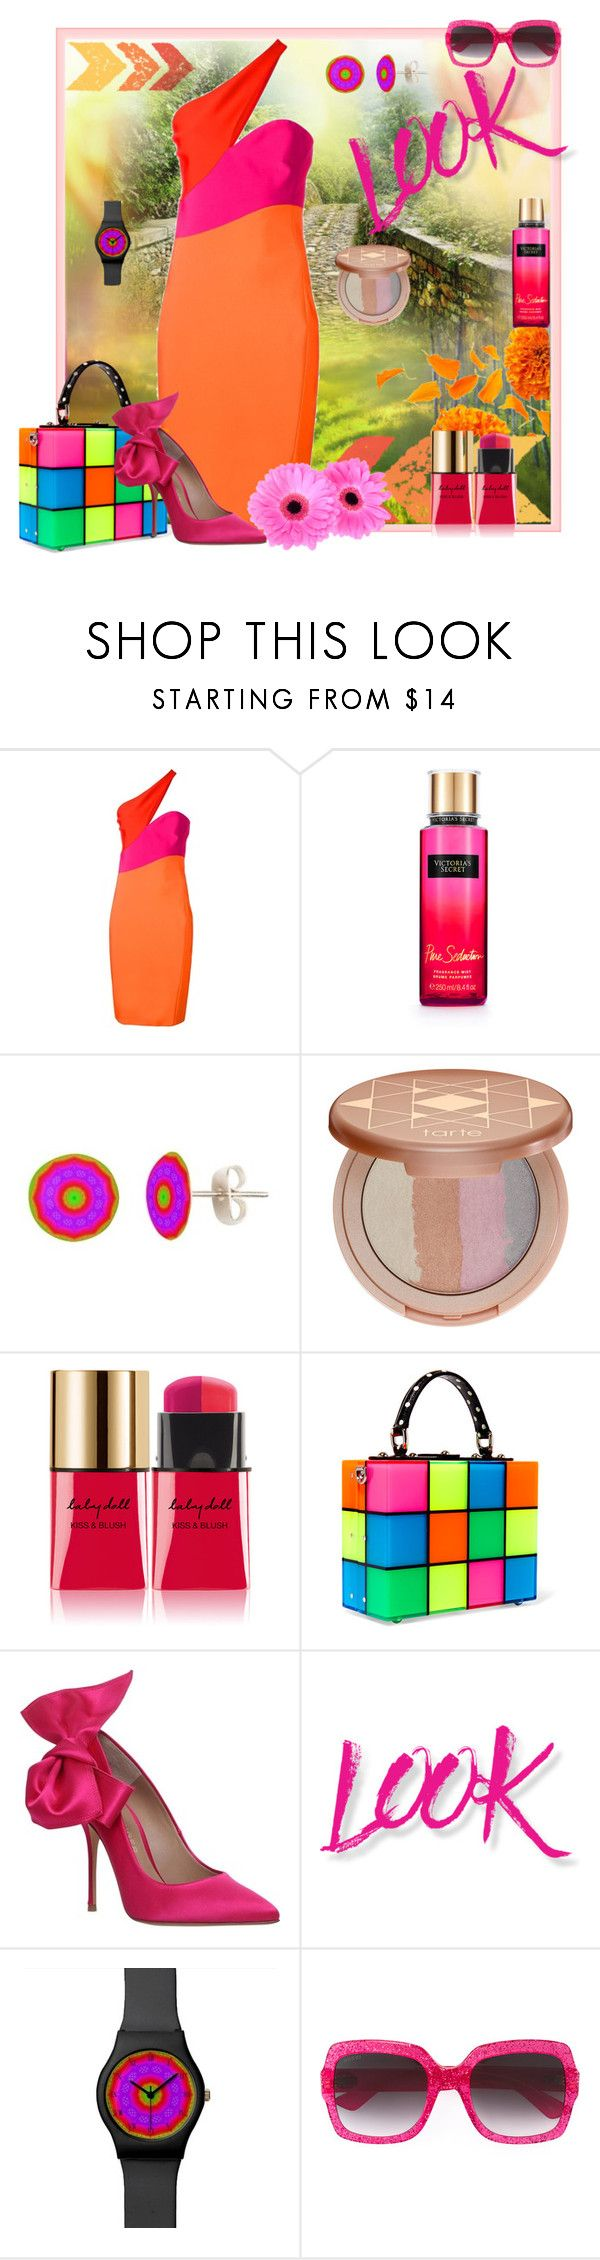 """Look at Here!"" by lkriss ❤ liked on Polyvore featuring Thierry Mugler, Victoria's Secret, tarte, Yves Saint Laurent, Dolce&Gabbana, Kurt Geiger, NYX, Gucci, Summer and summerstyle"